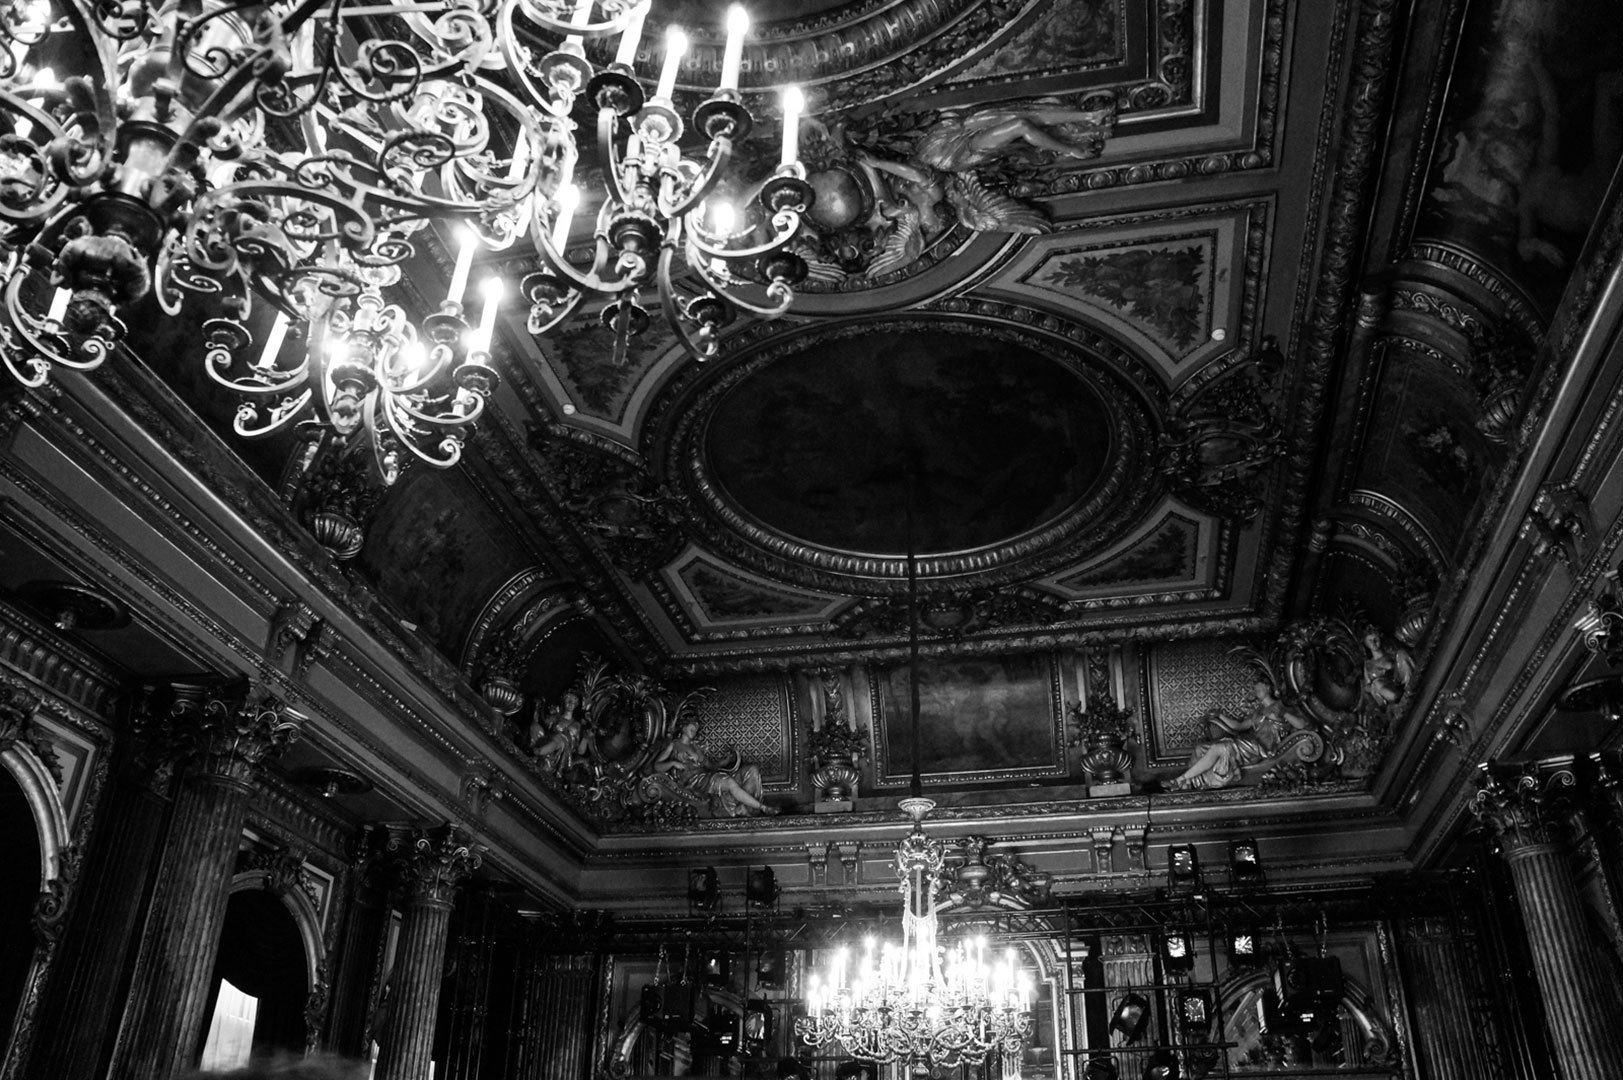 my-paris-fashion-week-diary-paris-by-polina-paraskevopoulou-all-rights-reserved-28